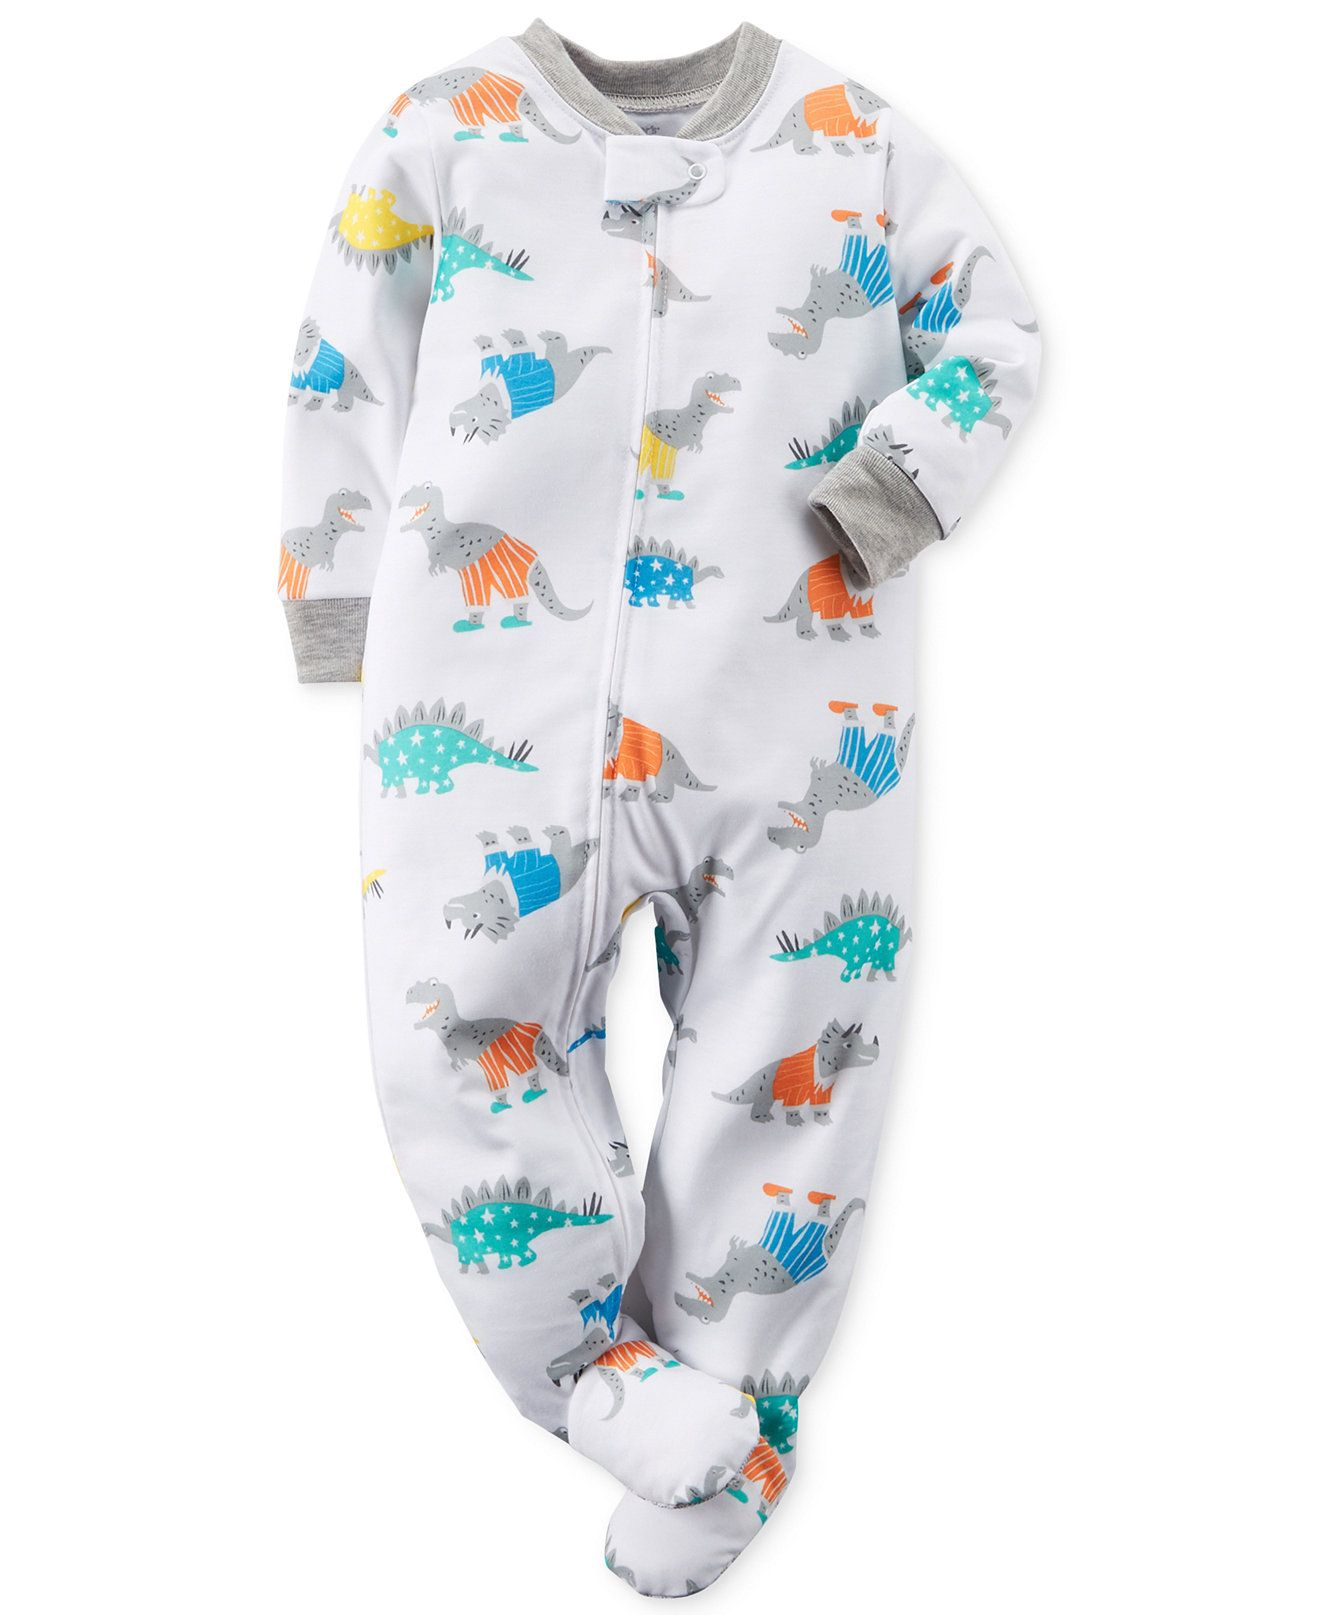 4f8e70eacc8e Carter s Baby Boys  Dino Coverall - Kids Baby Boy (0-24 months ...